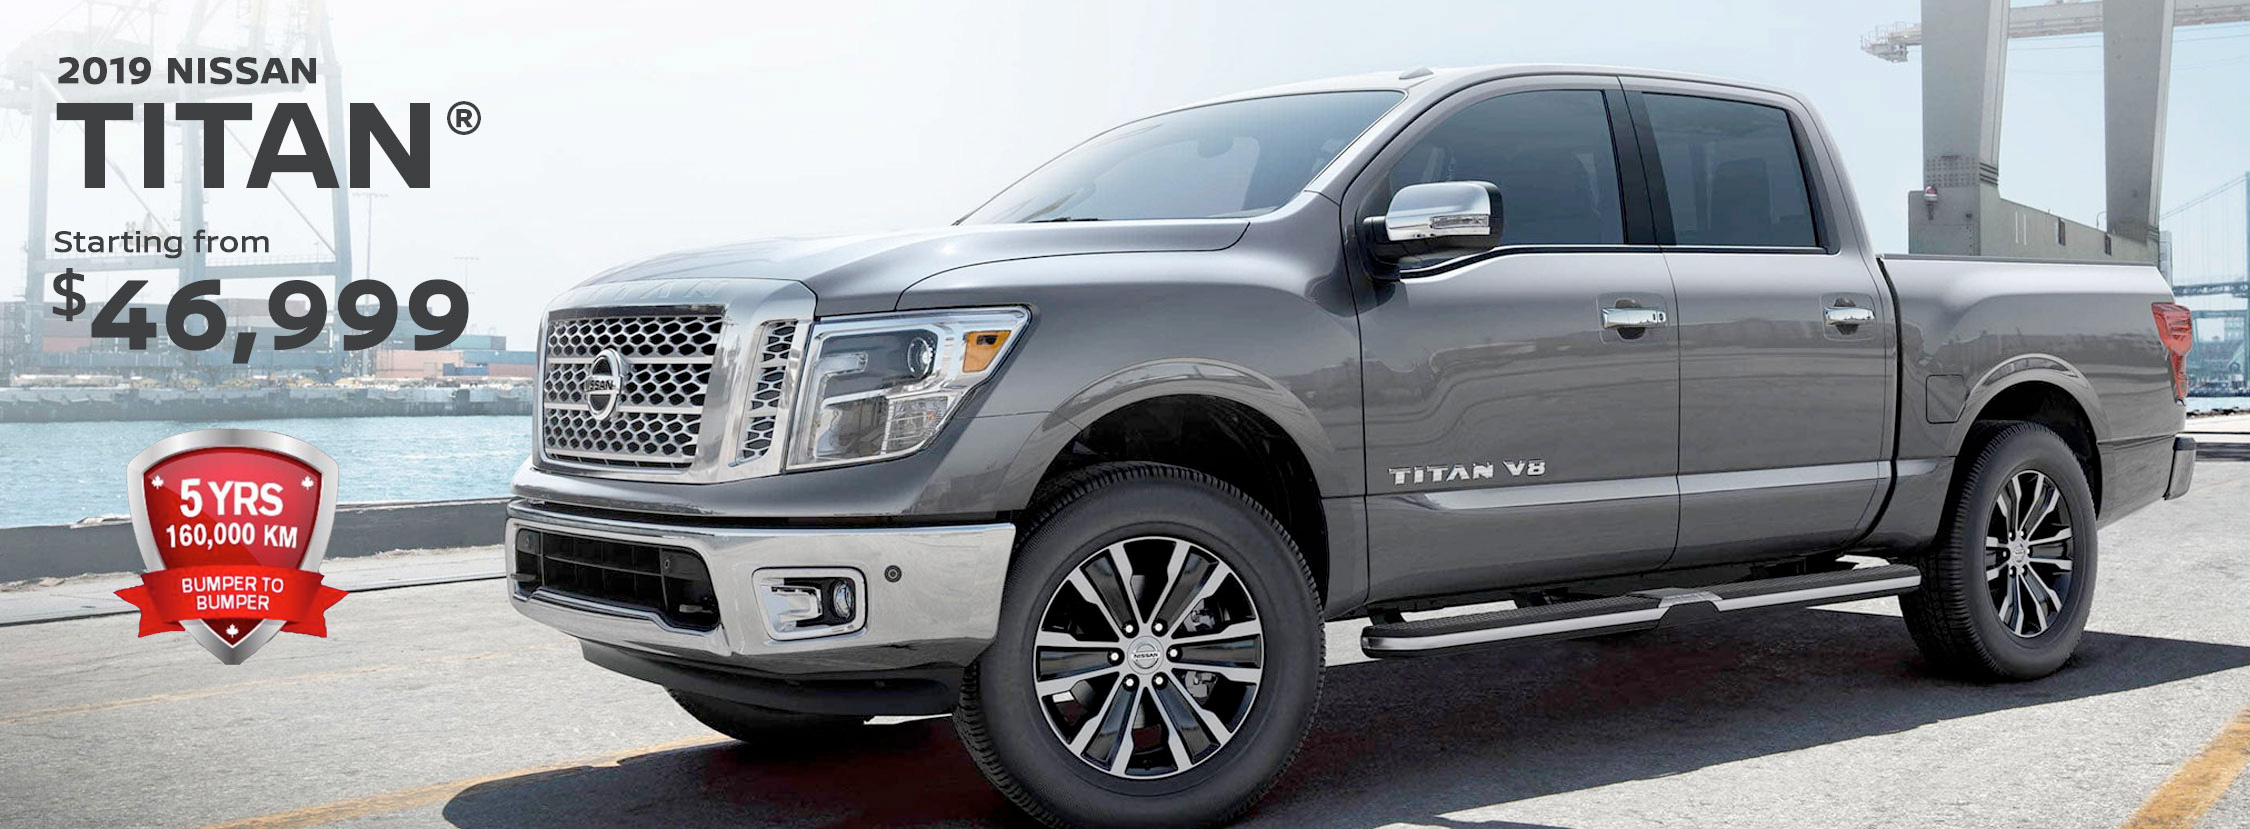 2019 Nissan Titan Starting from $46,999